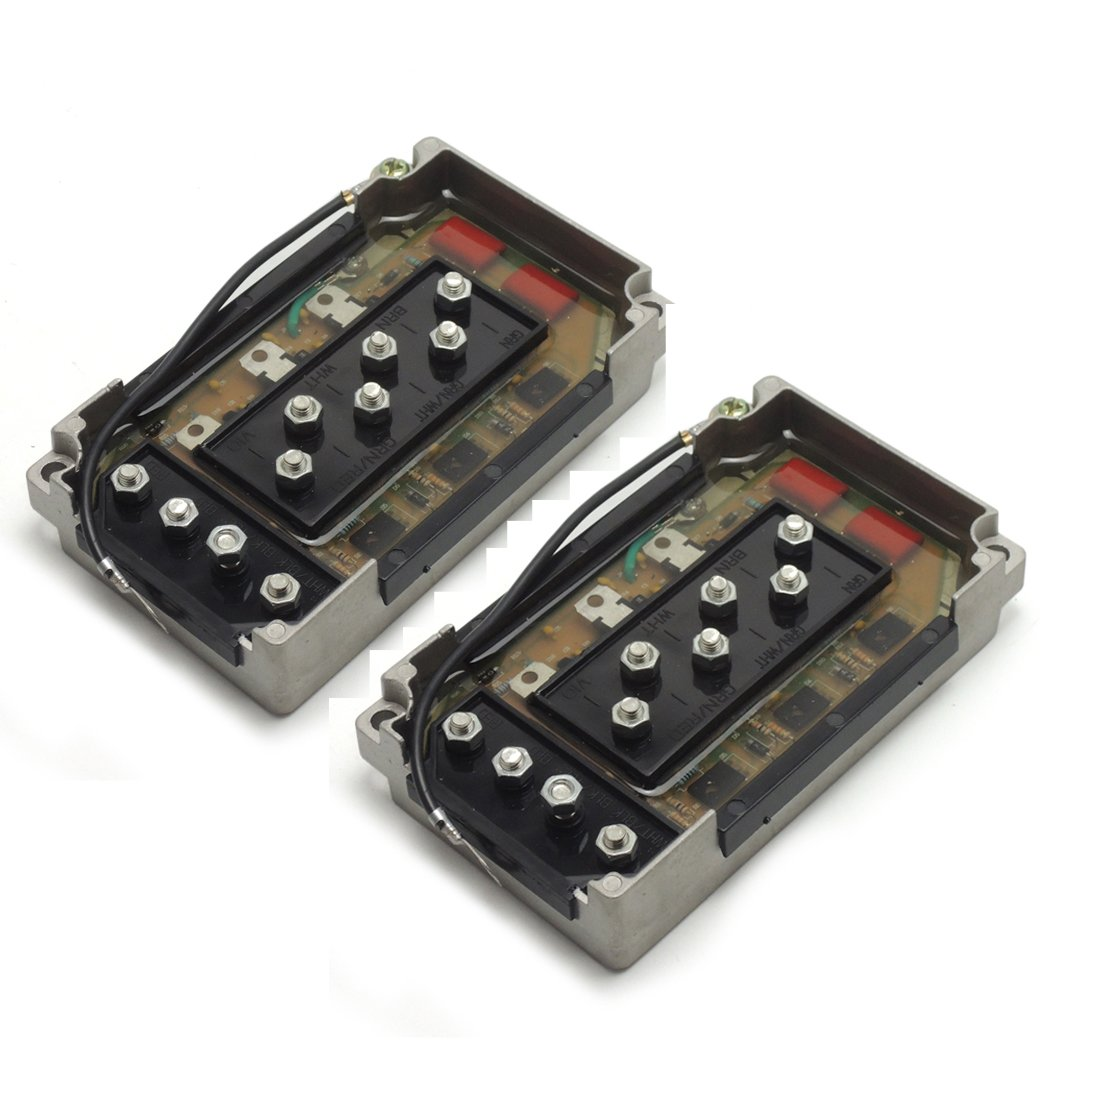 CDI Switch Box 2pcs for 50-275 HP Mercury Outboard Motor Power Pack 332-7778